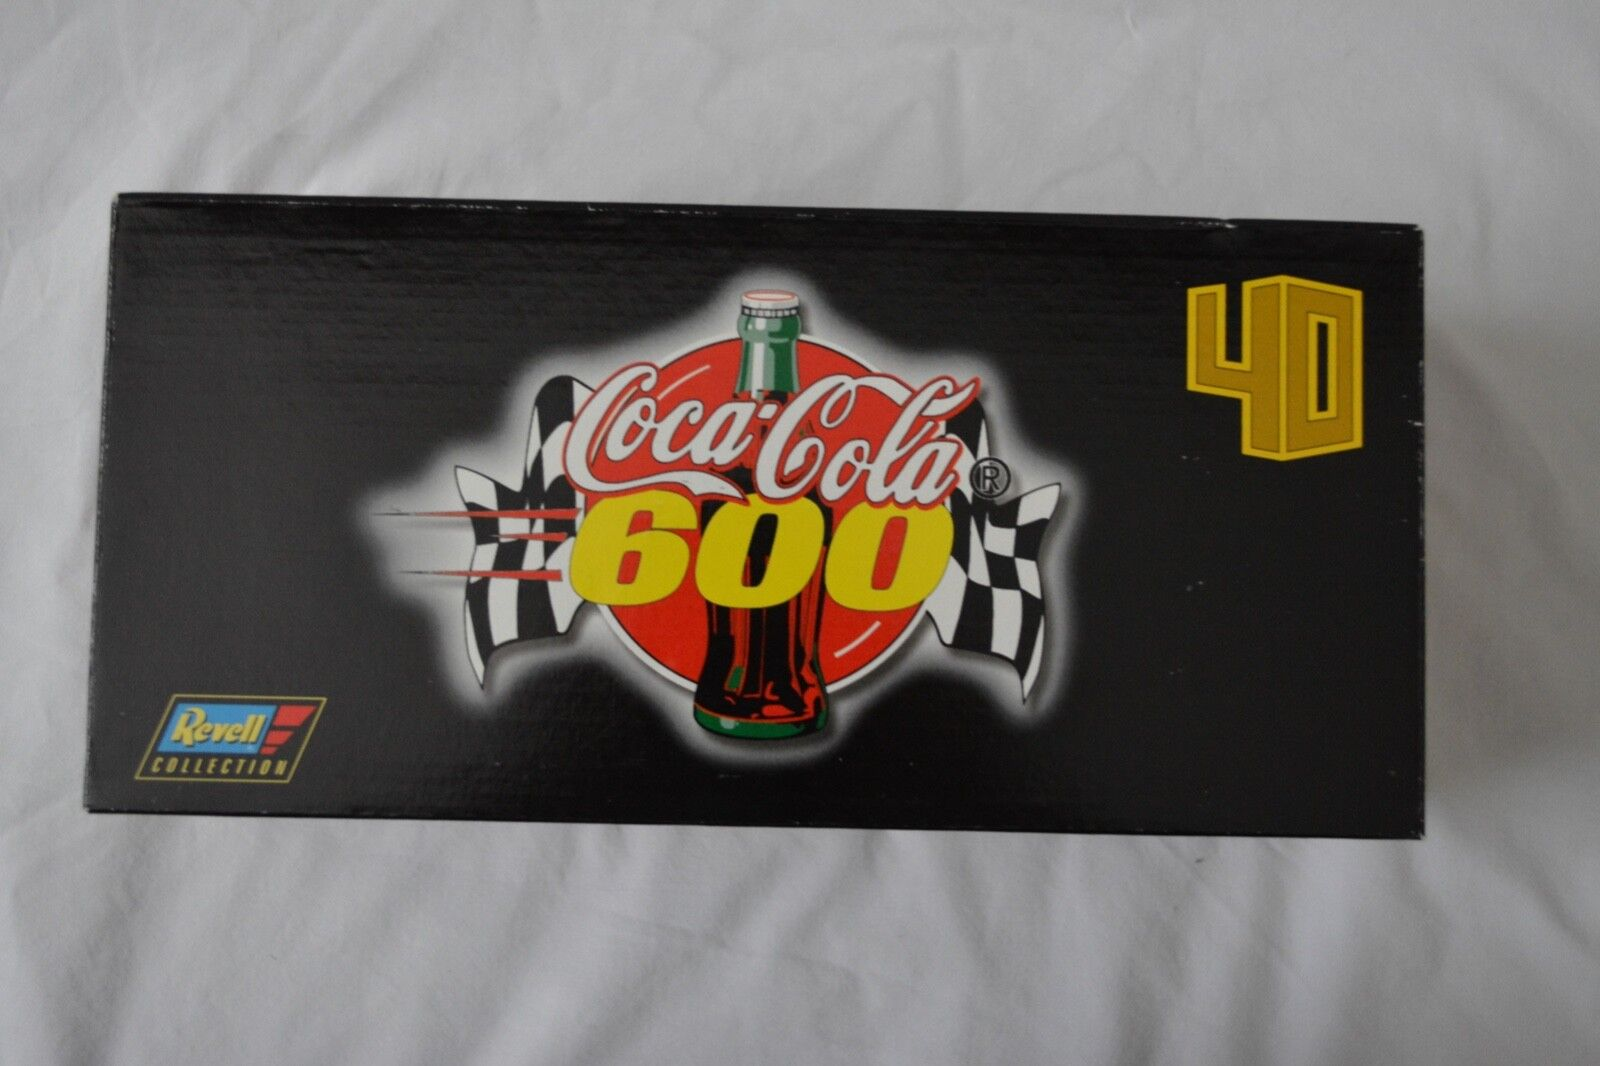 1 18 Revell 1999 Diecast Charlotte Motor Speedway Coca Cola 600 of 2,508